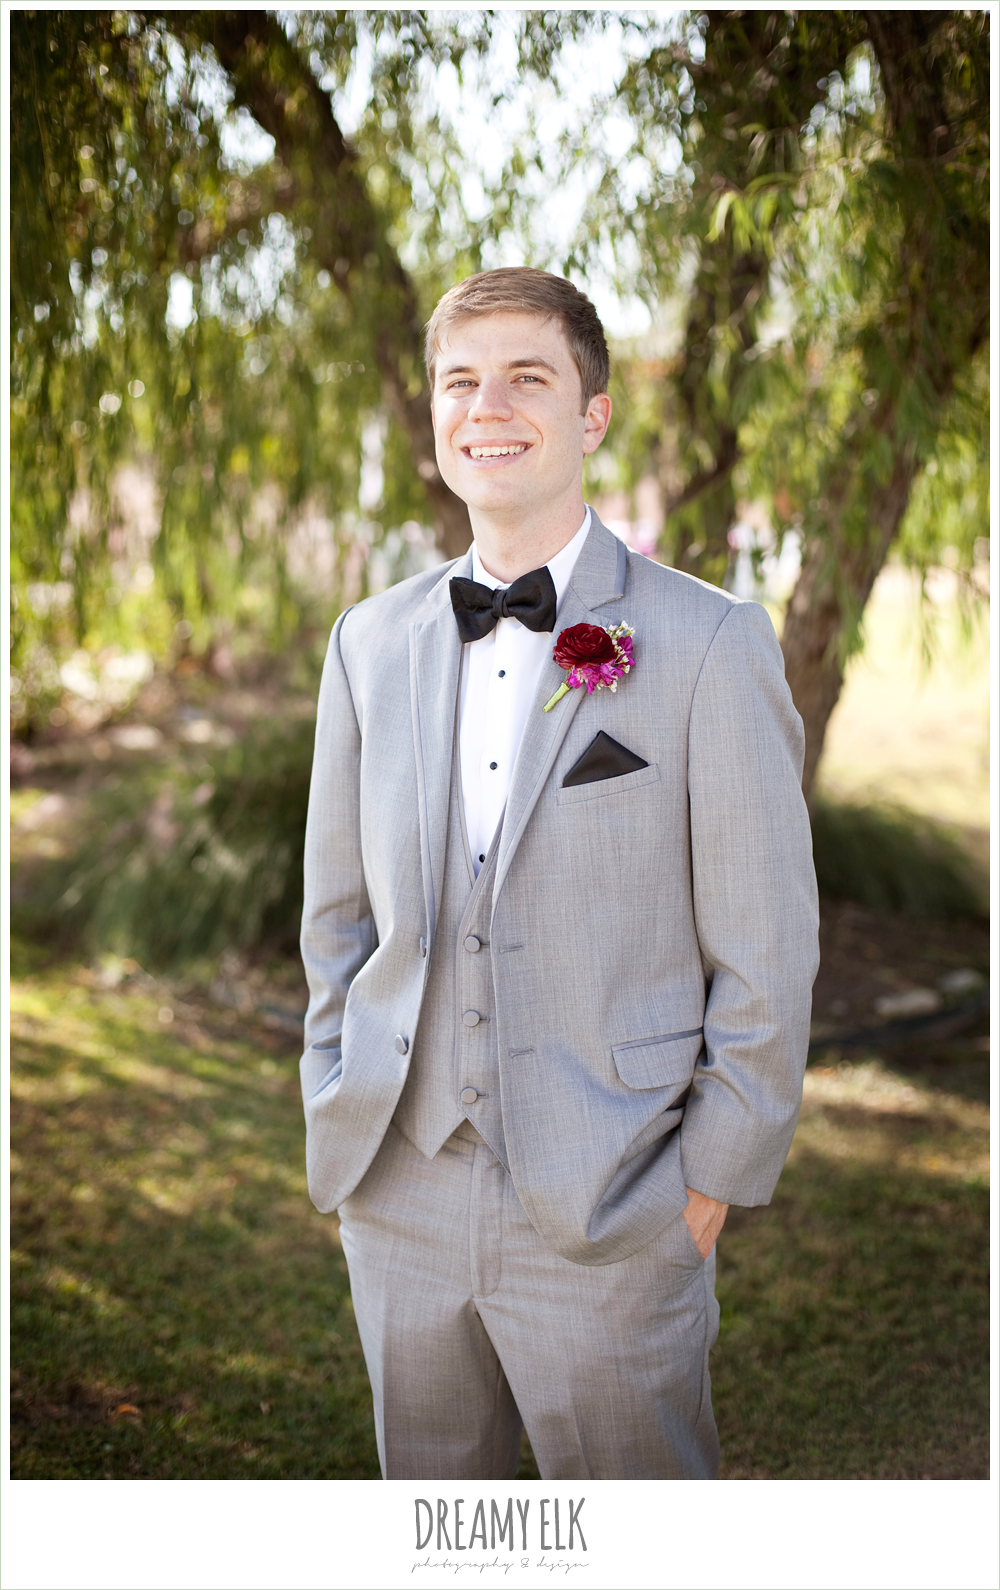 groom in gray suit, october wedding, inn at quarry ridge, dreamy elk photography and design